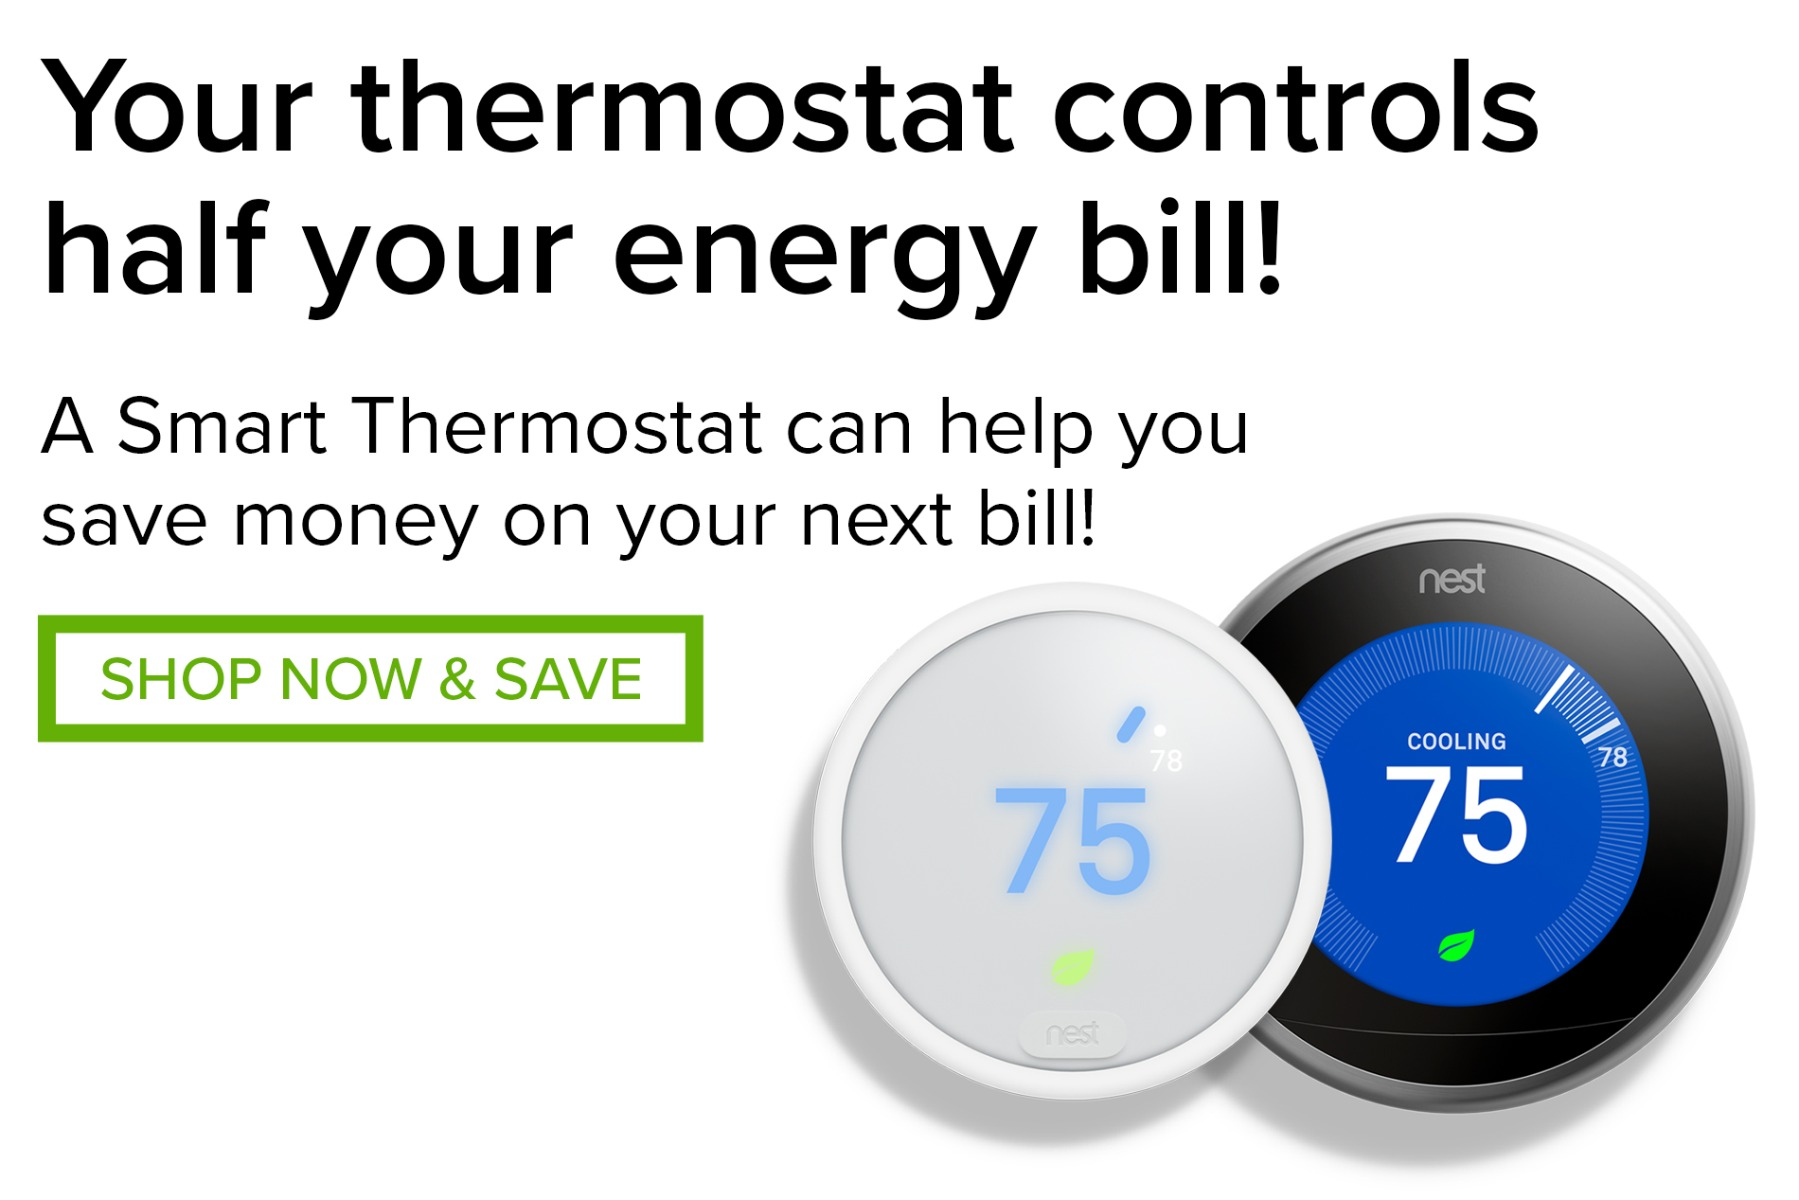 Limited Time Savings on Smart Thermostats!